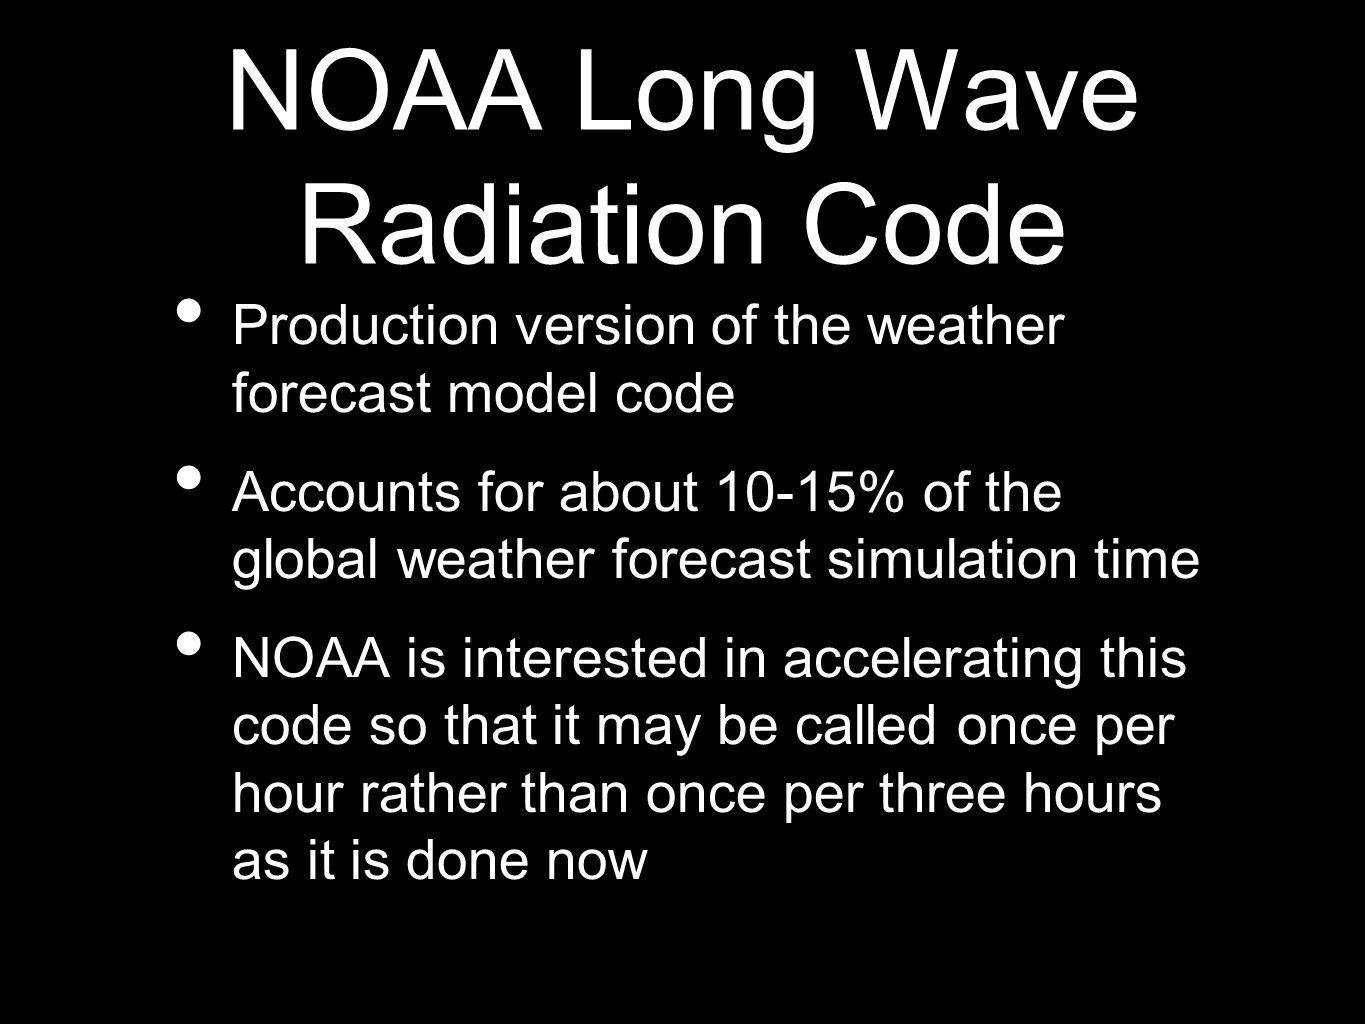 NOAA Long Wave Radiation Code Production version of the weather forecast model code Accounts for about 10-15% of the global weather forecast simulation time NOAA is interested in accelerating this code so that it may be called once per hour rather than once per three hours as it is done now